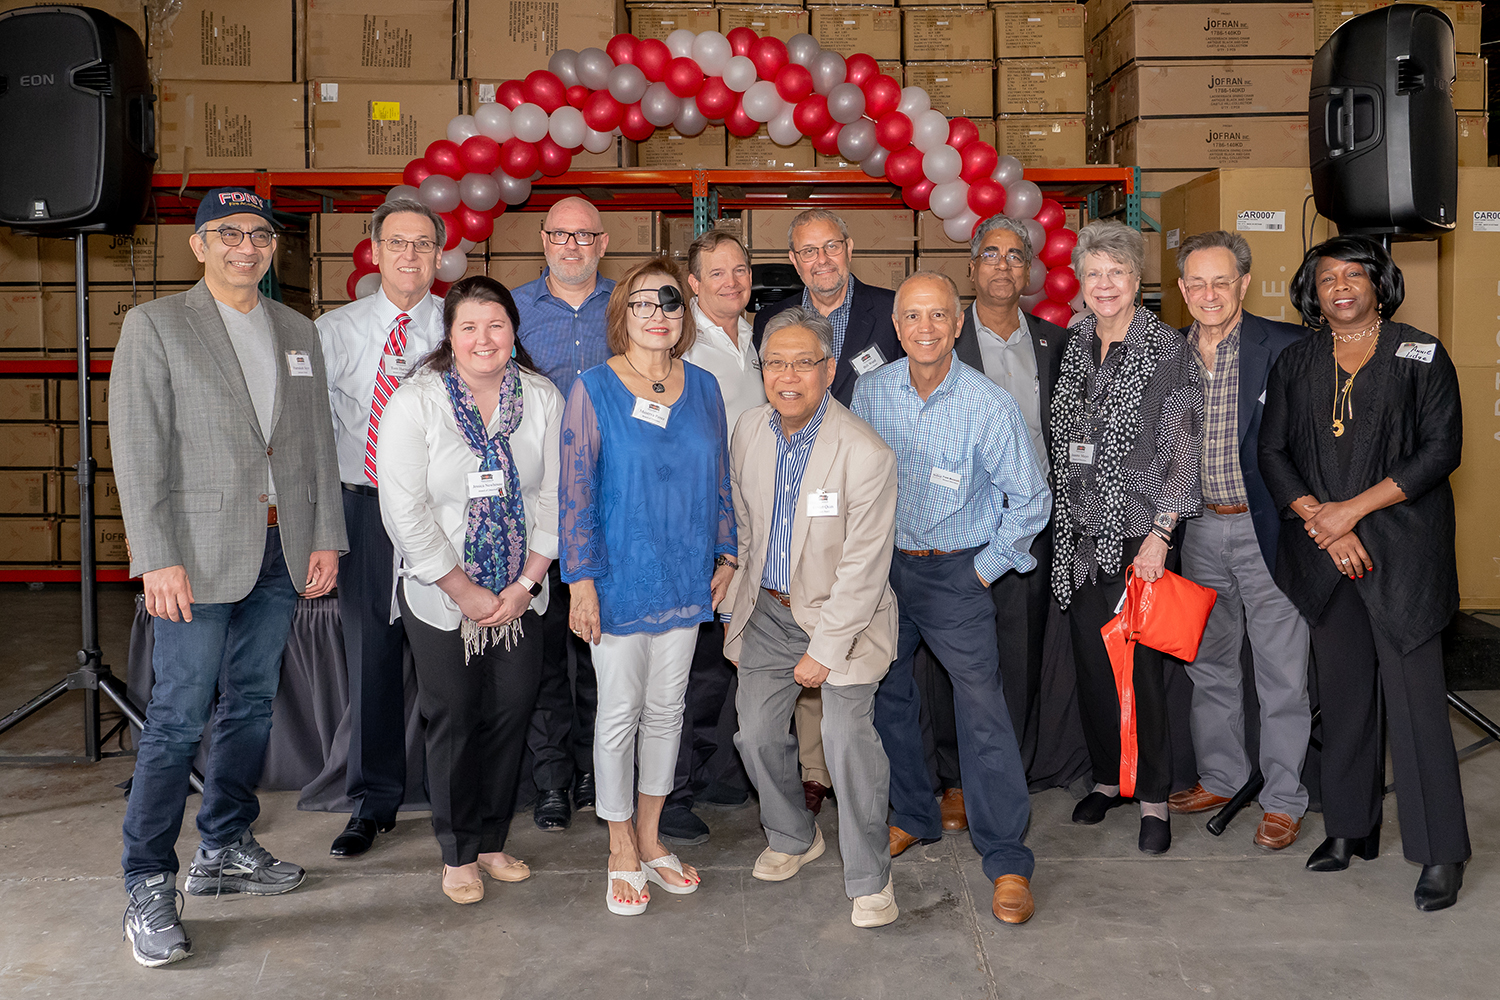 Members of the Houston Furniture Bank Board